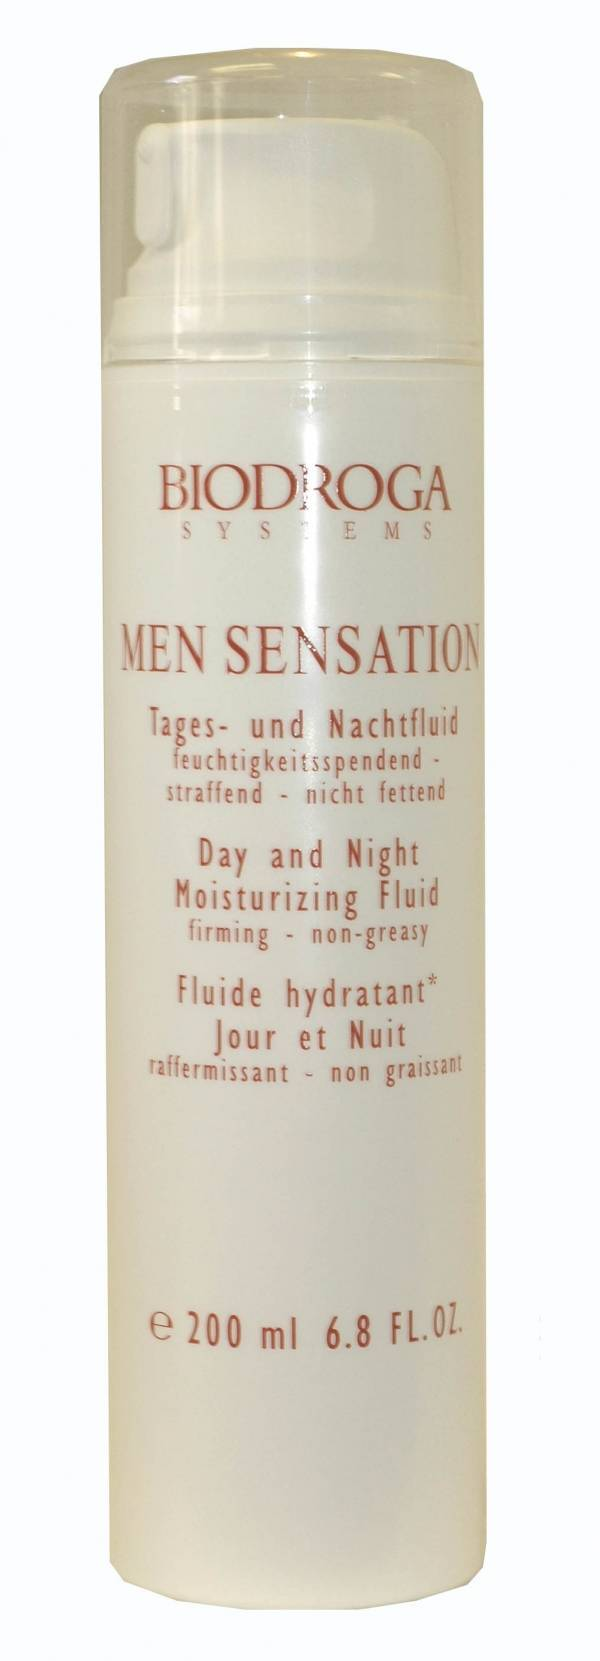 Biodroga Men 24 Hour Moisturizing Fluid